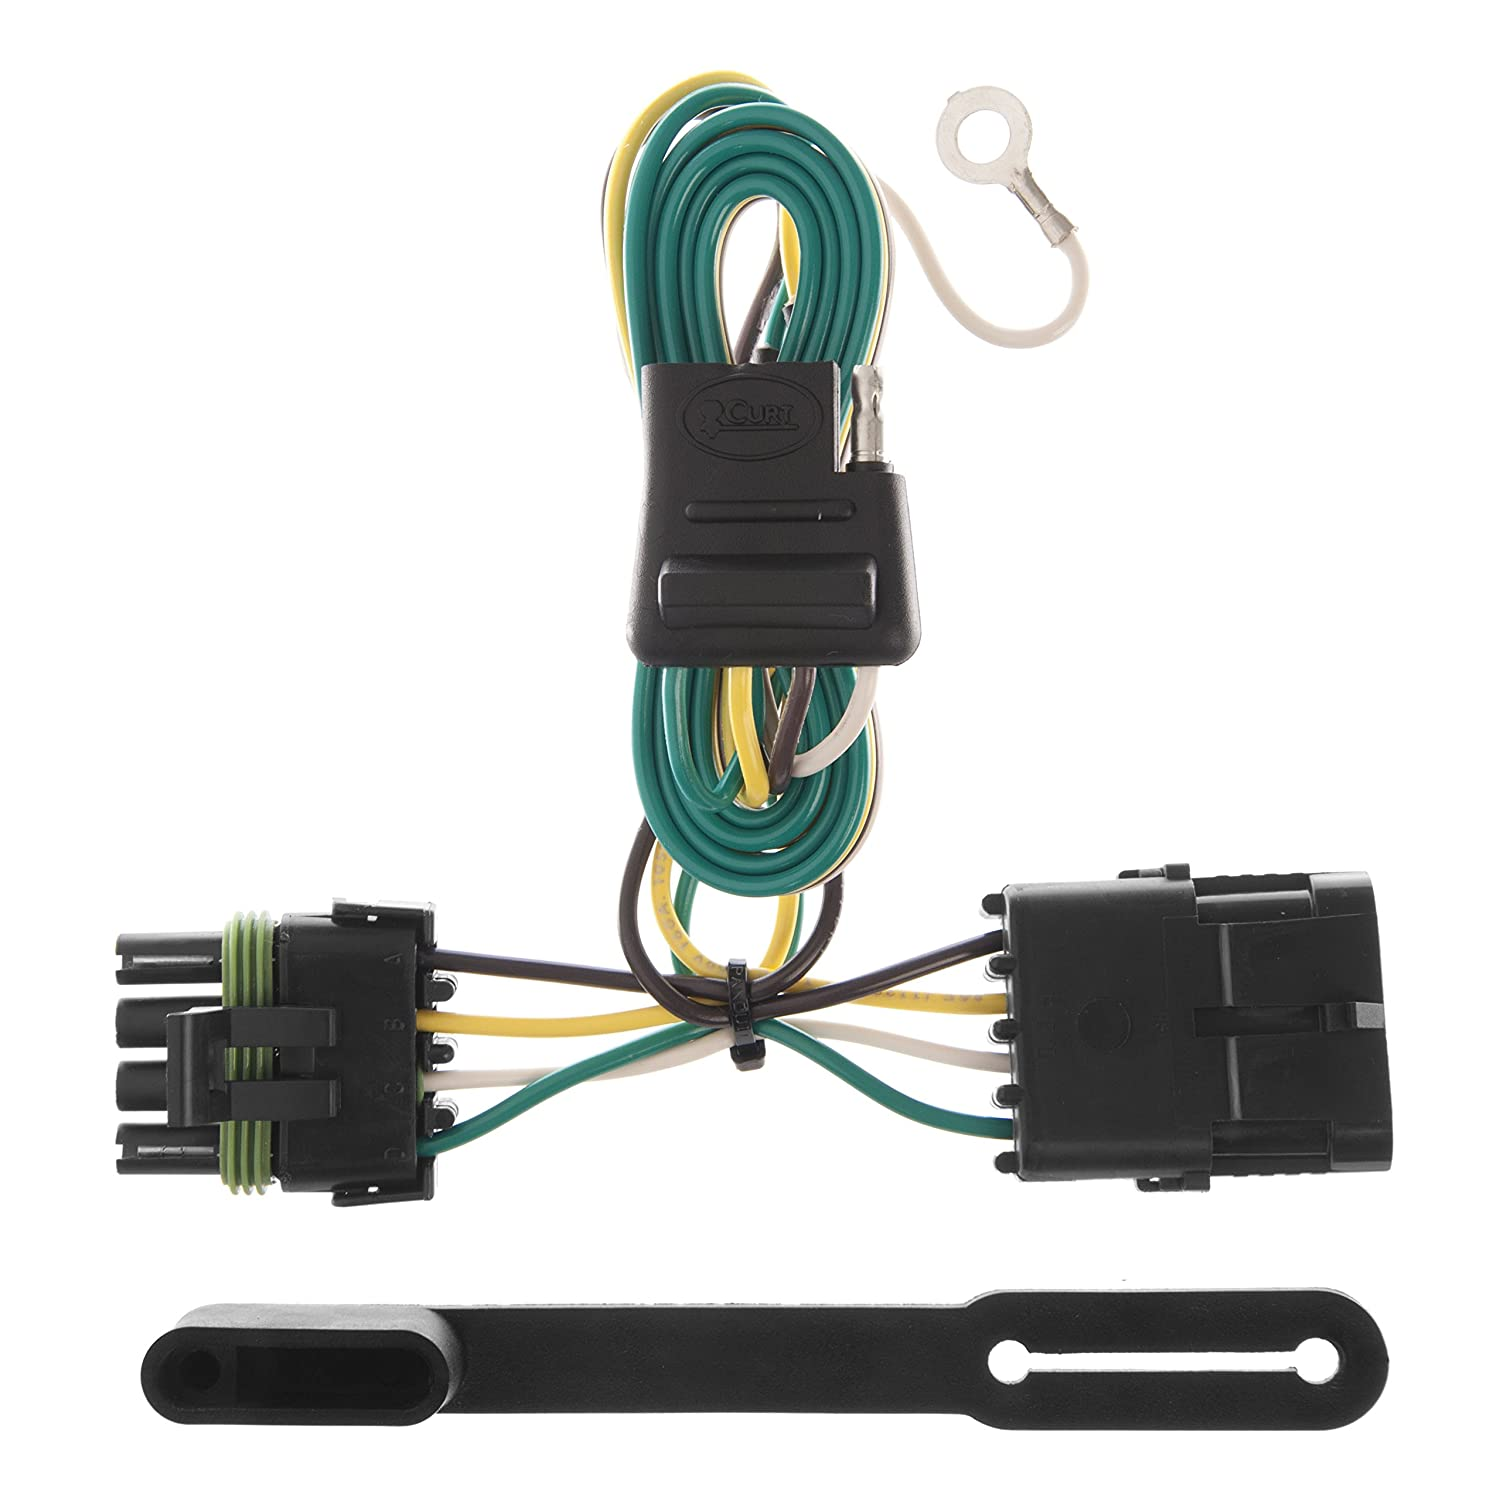 81G6dFhJQoL._SL1500_ amazon com curt 55315 custom wiring harness automotive 1981 gmc wiring harness at mifinder.co